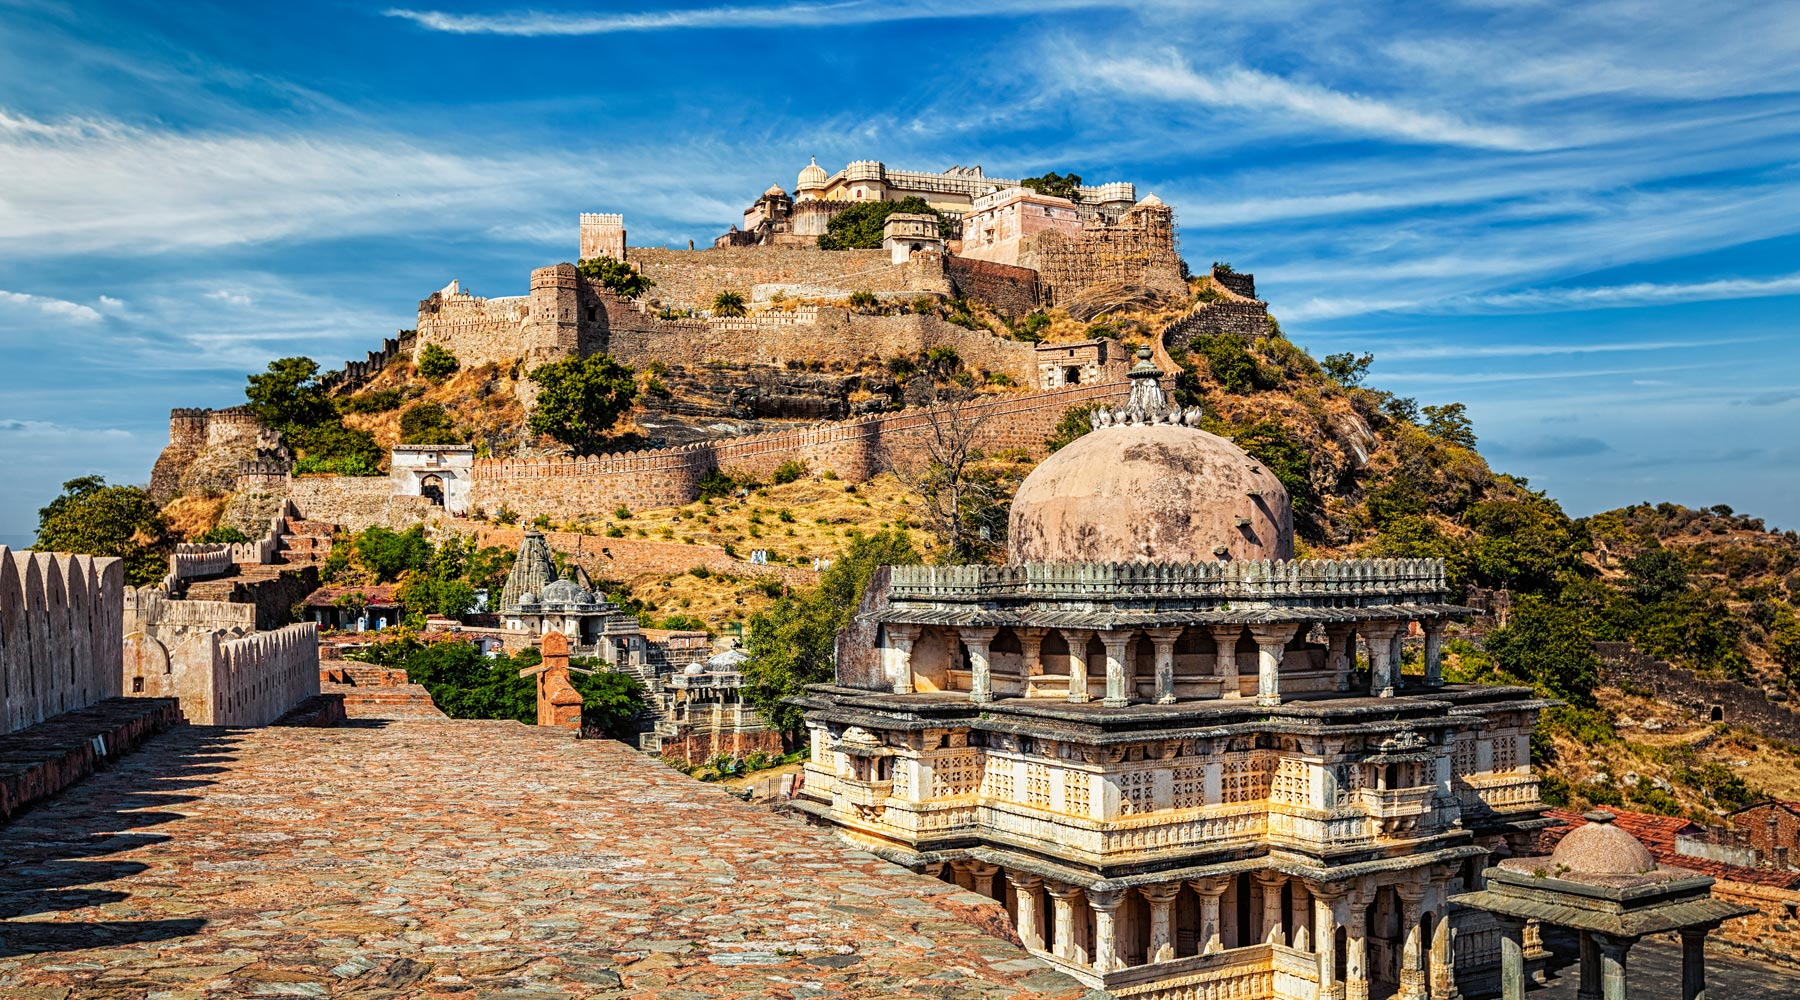 Kumbhalgarh fort in India